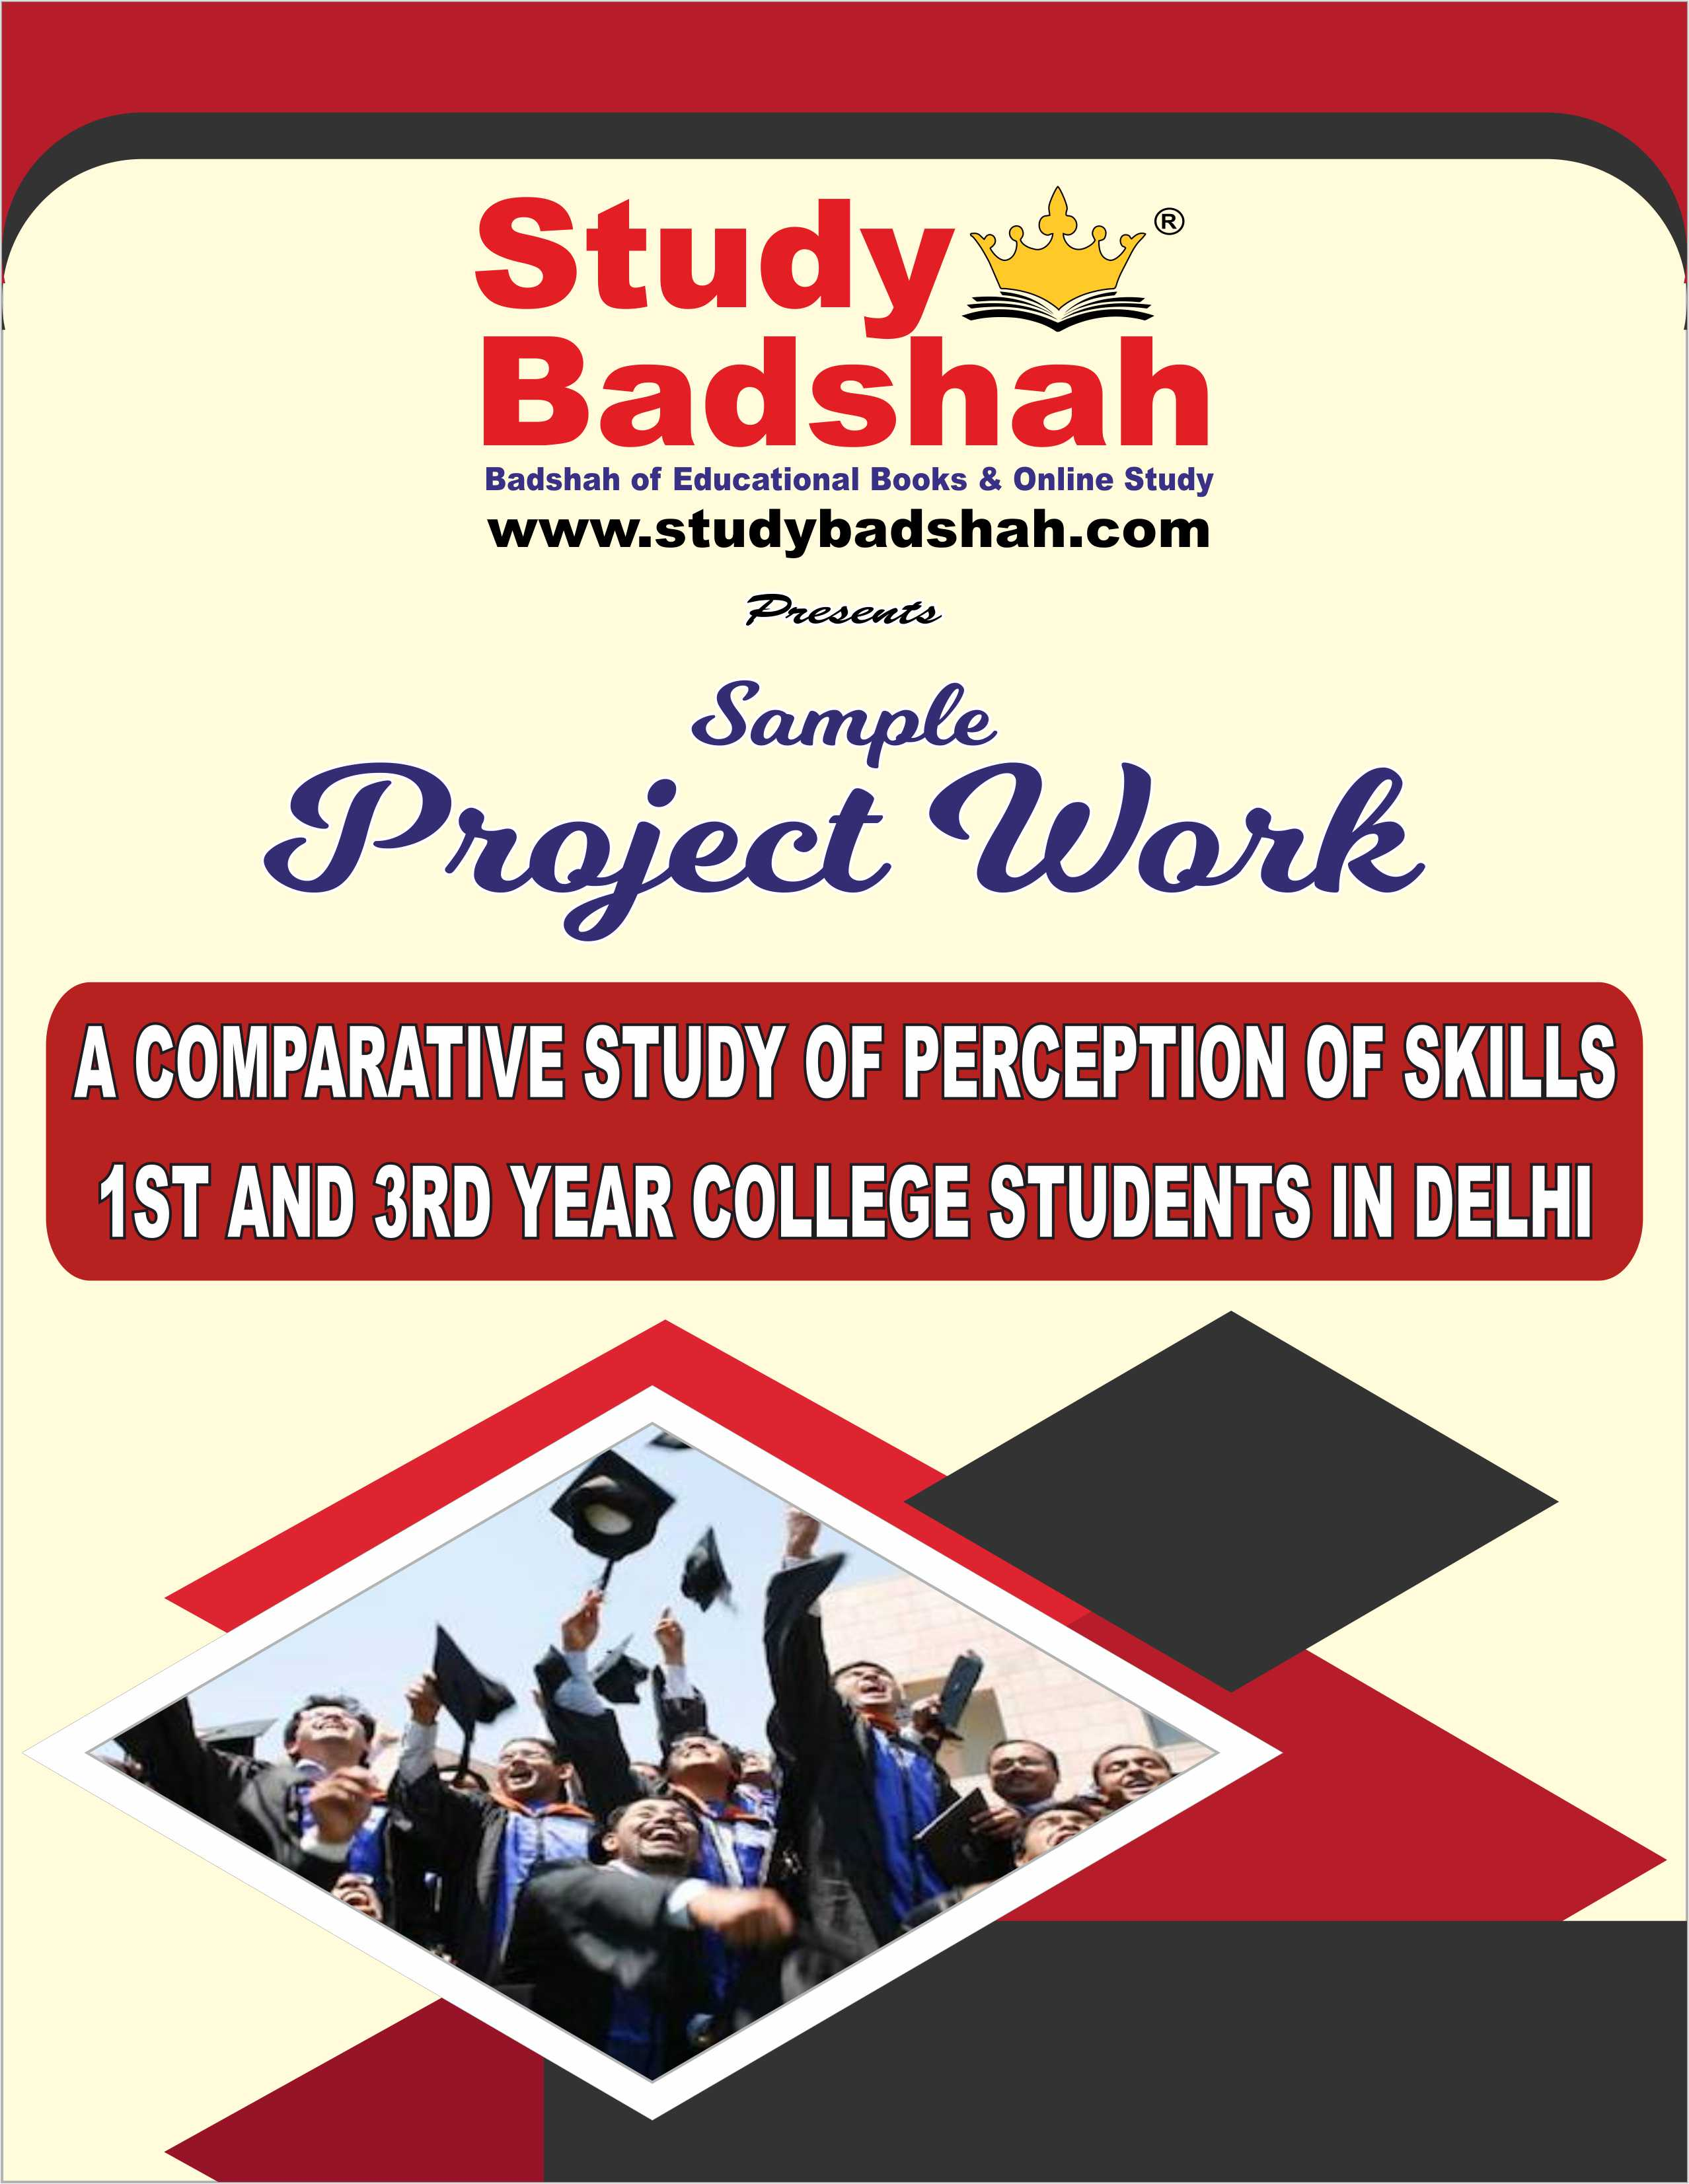 A COMPARATIVE STUDY OF PERCEPTION OF SKILLS 1ST AND 3RD YEAR COLLEGE STUDENTS IN DELHI